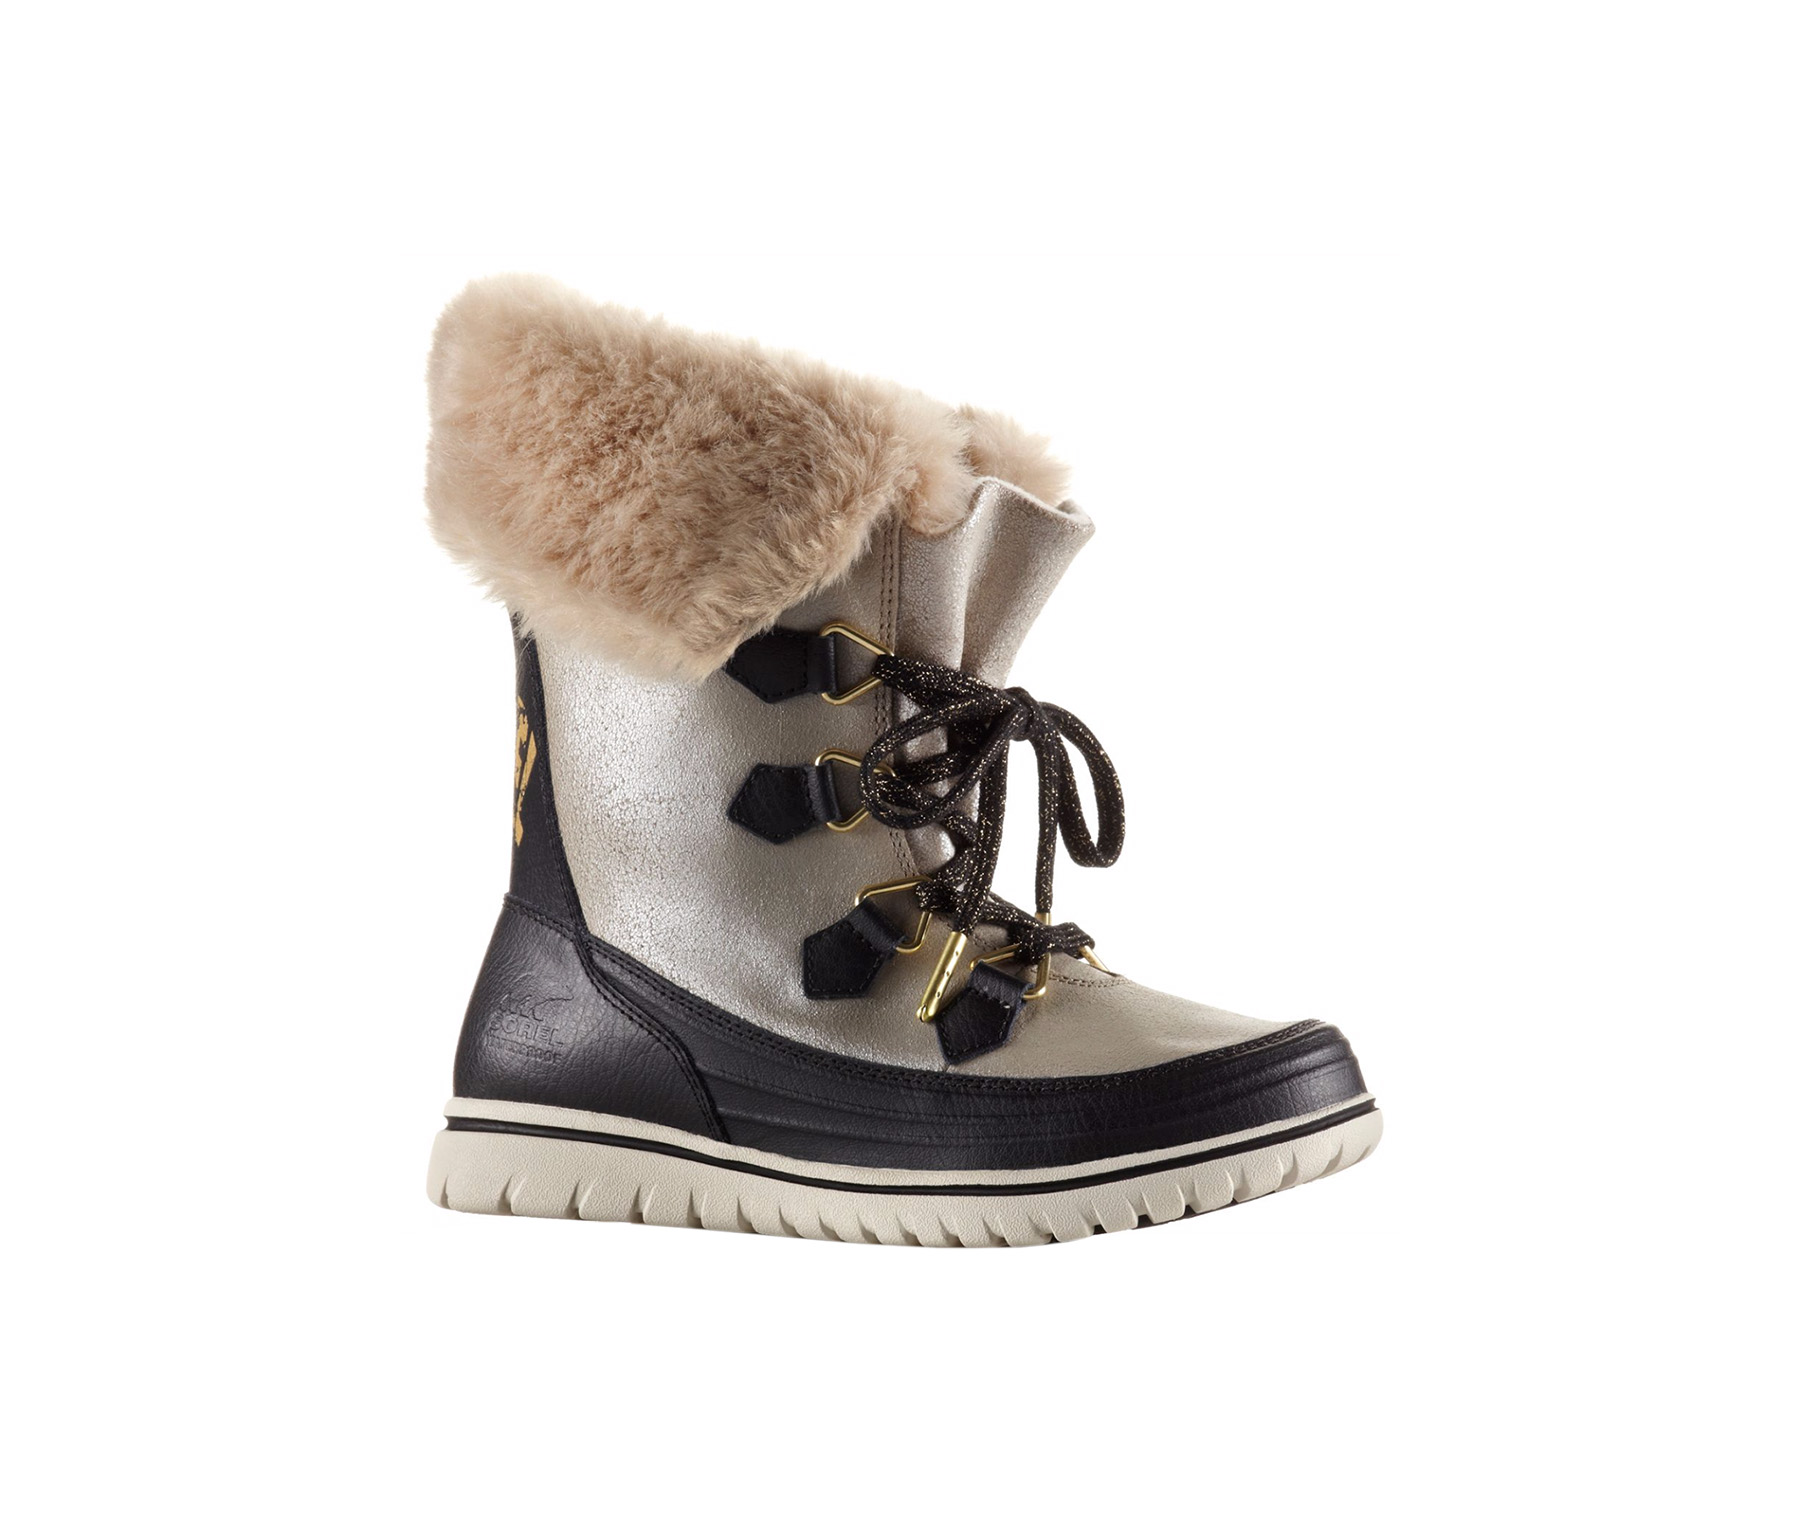 Sorel Women's Snowdance Boot